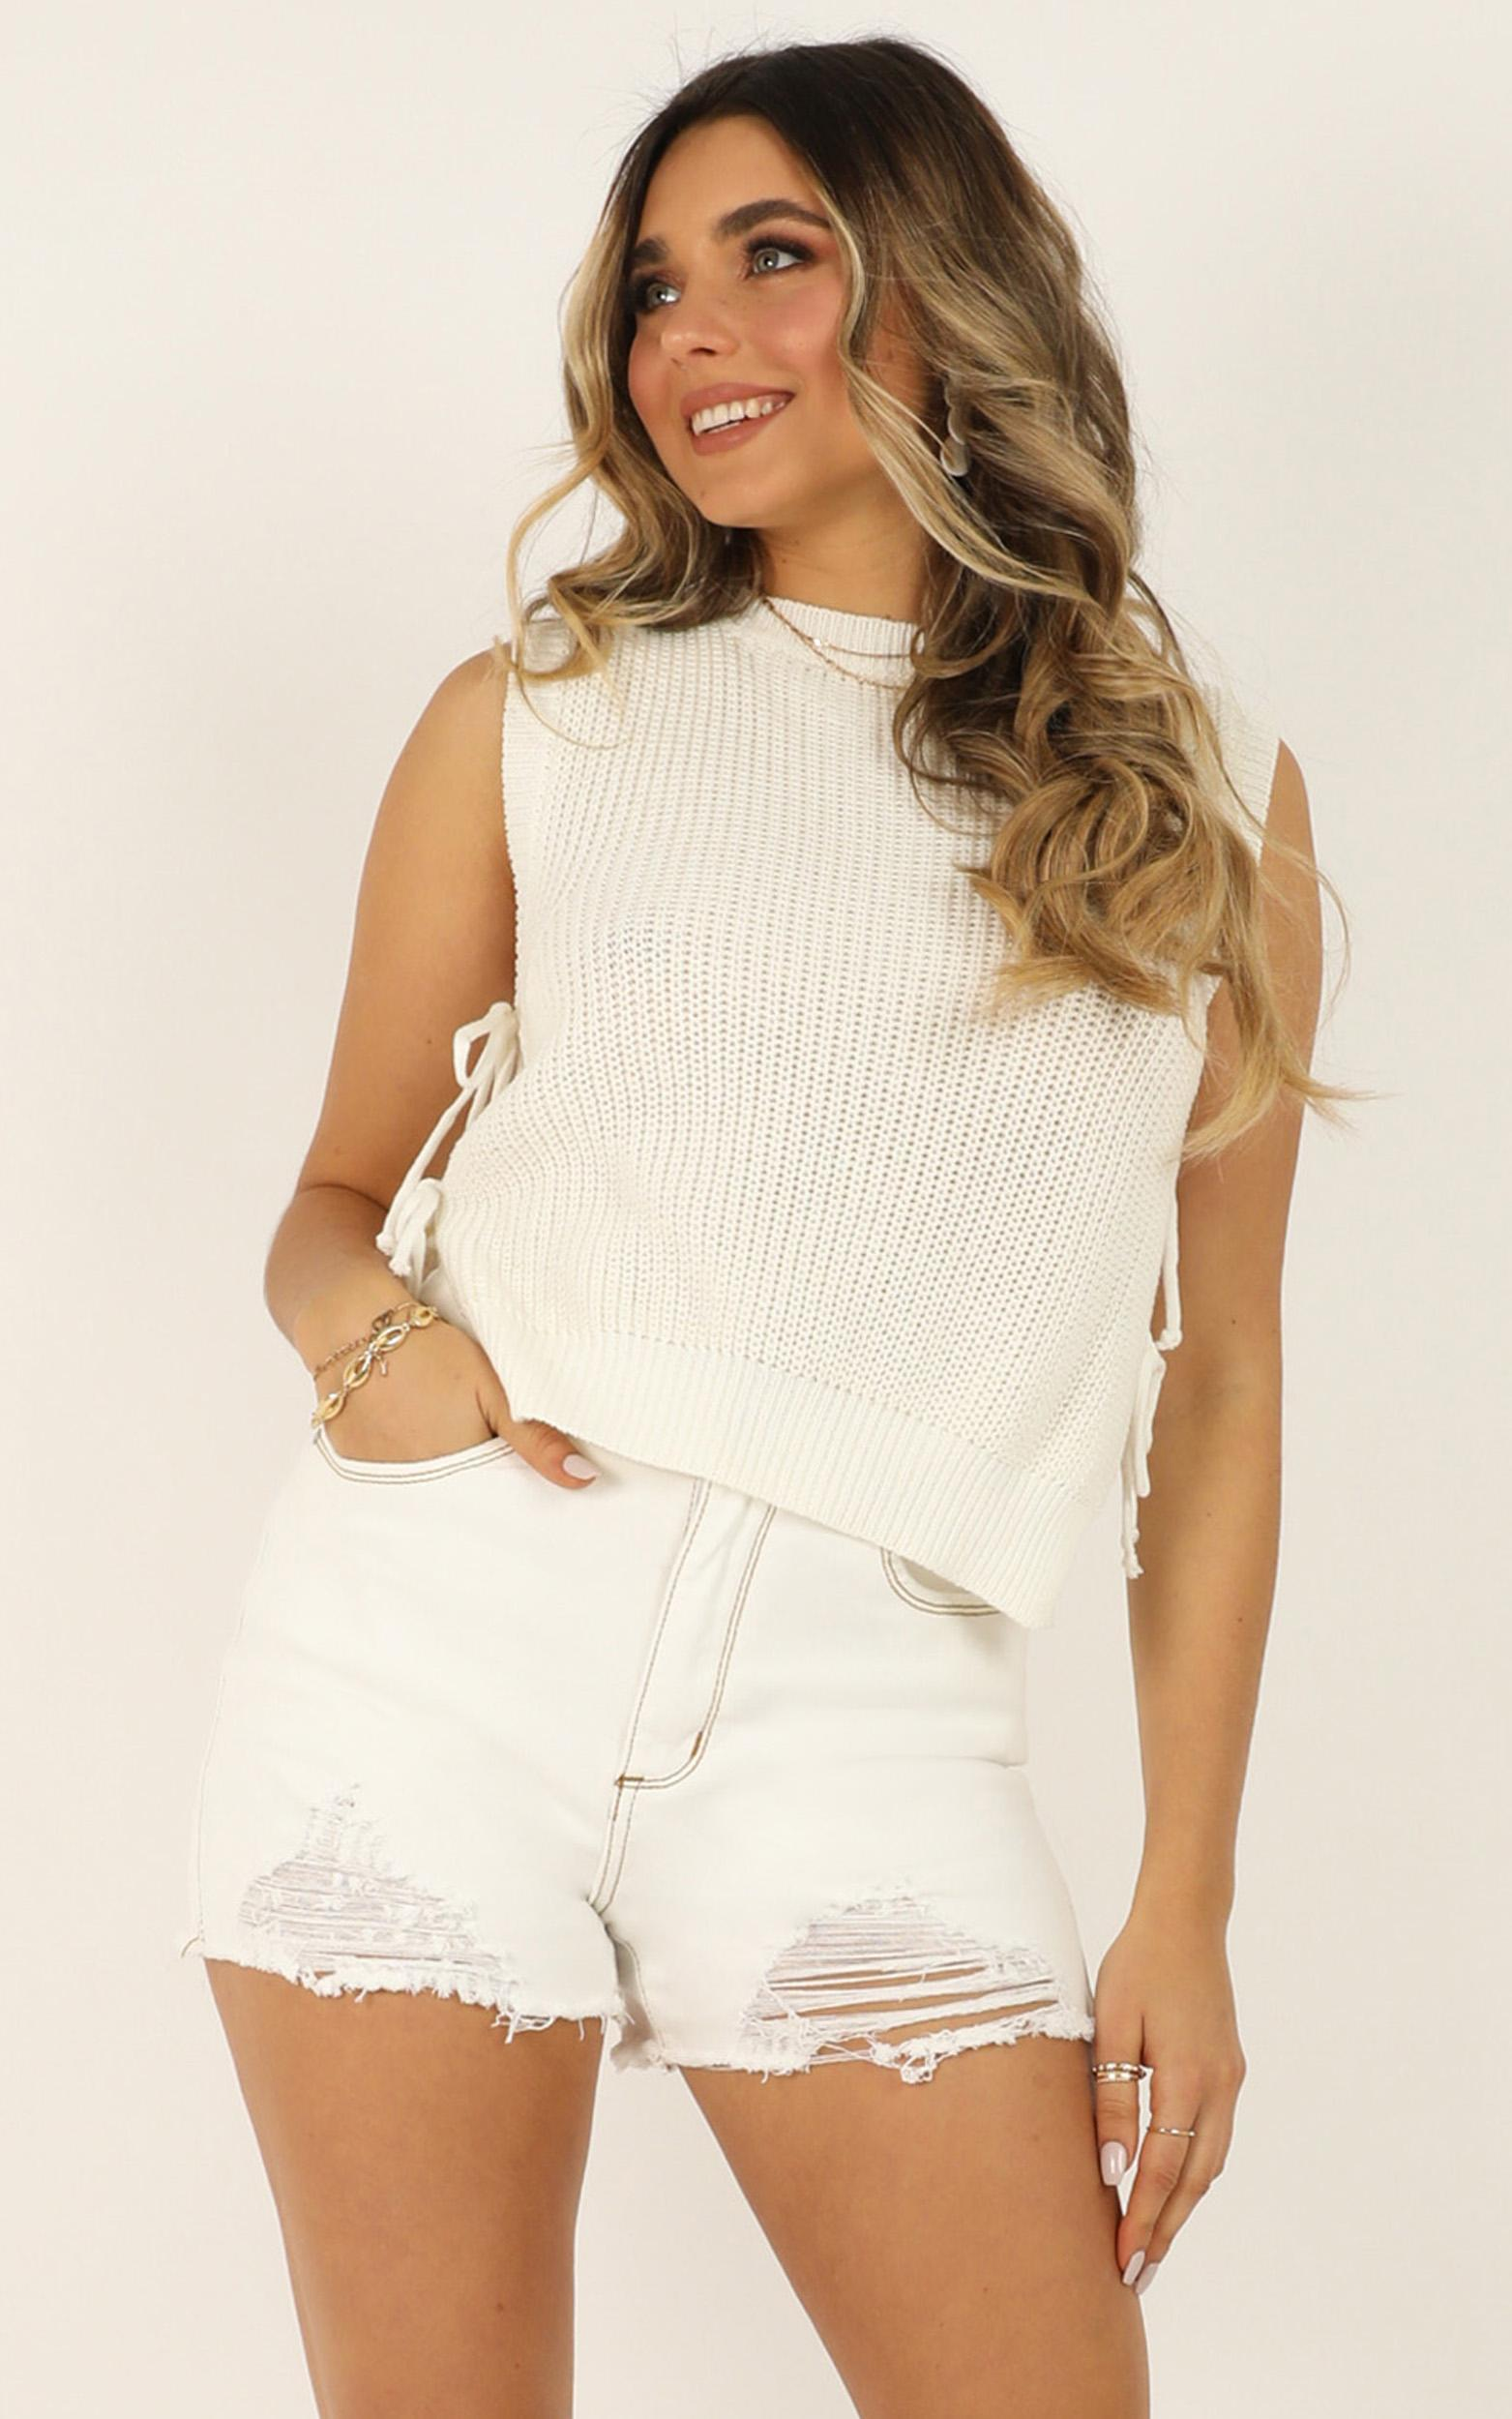 Golden Explorer Knit Top in white - 20 (XXXXL), White, hi-res image number null